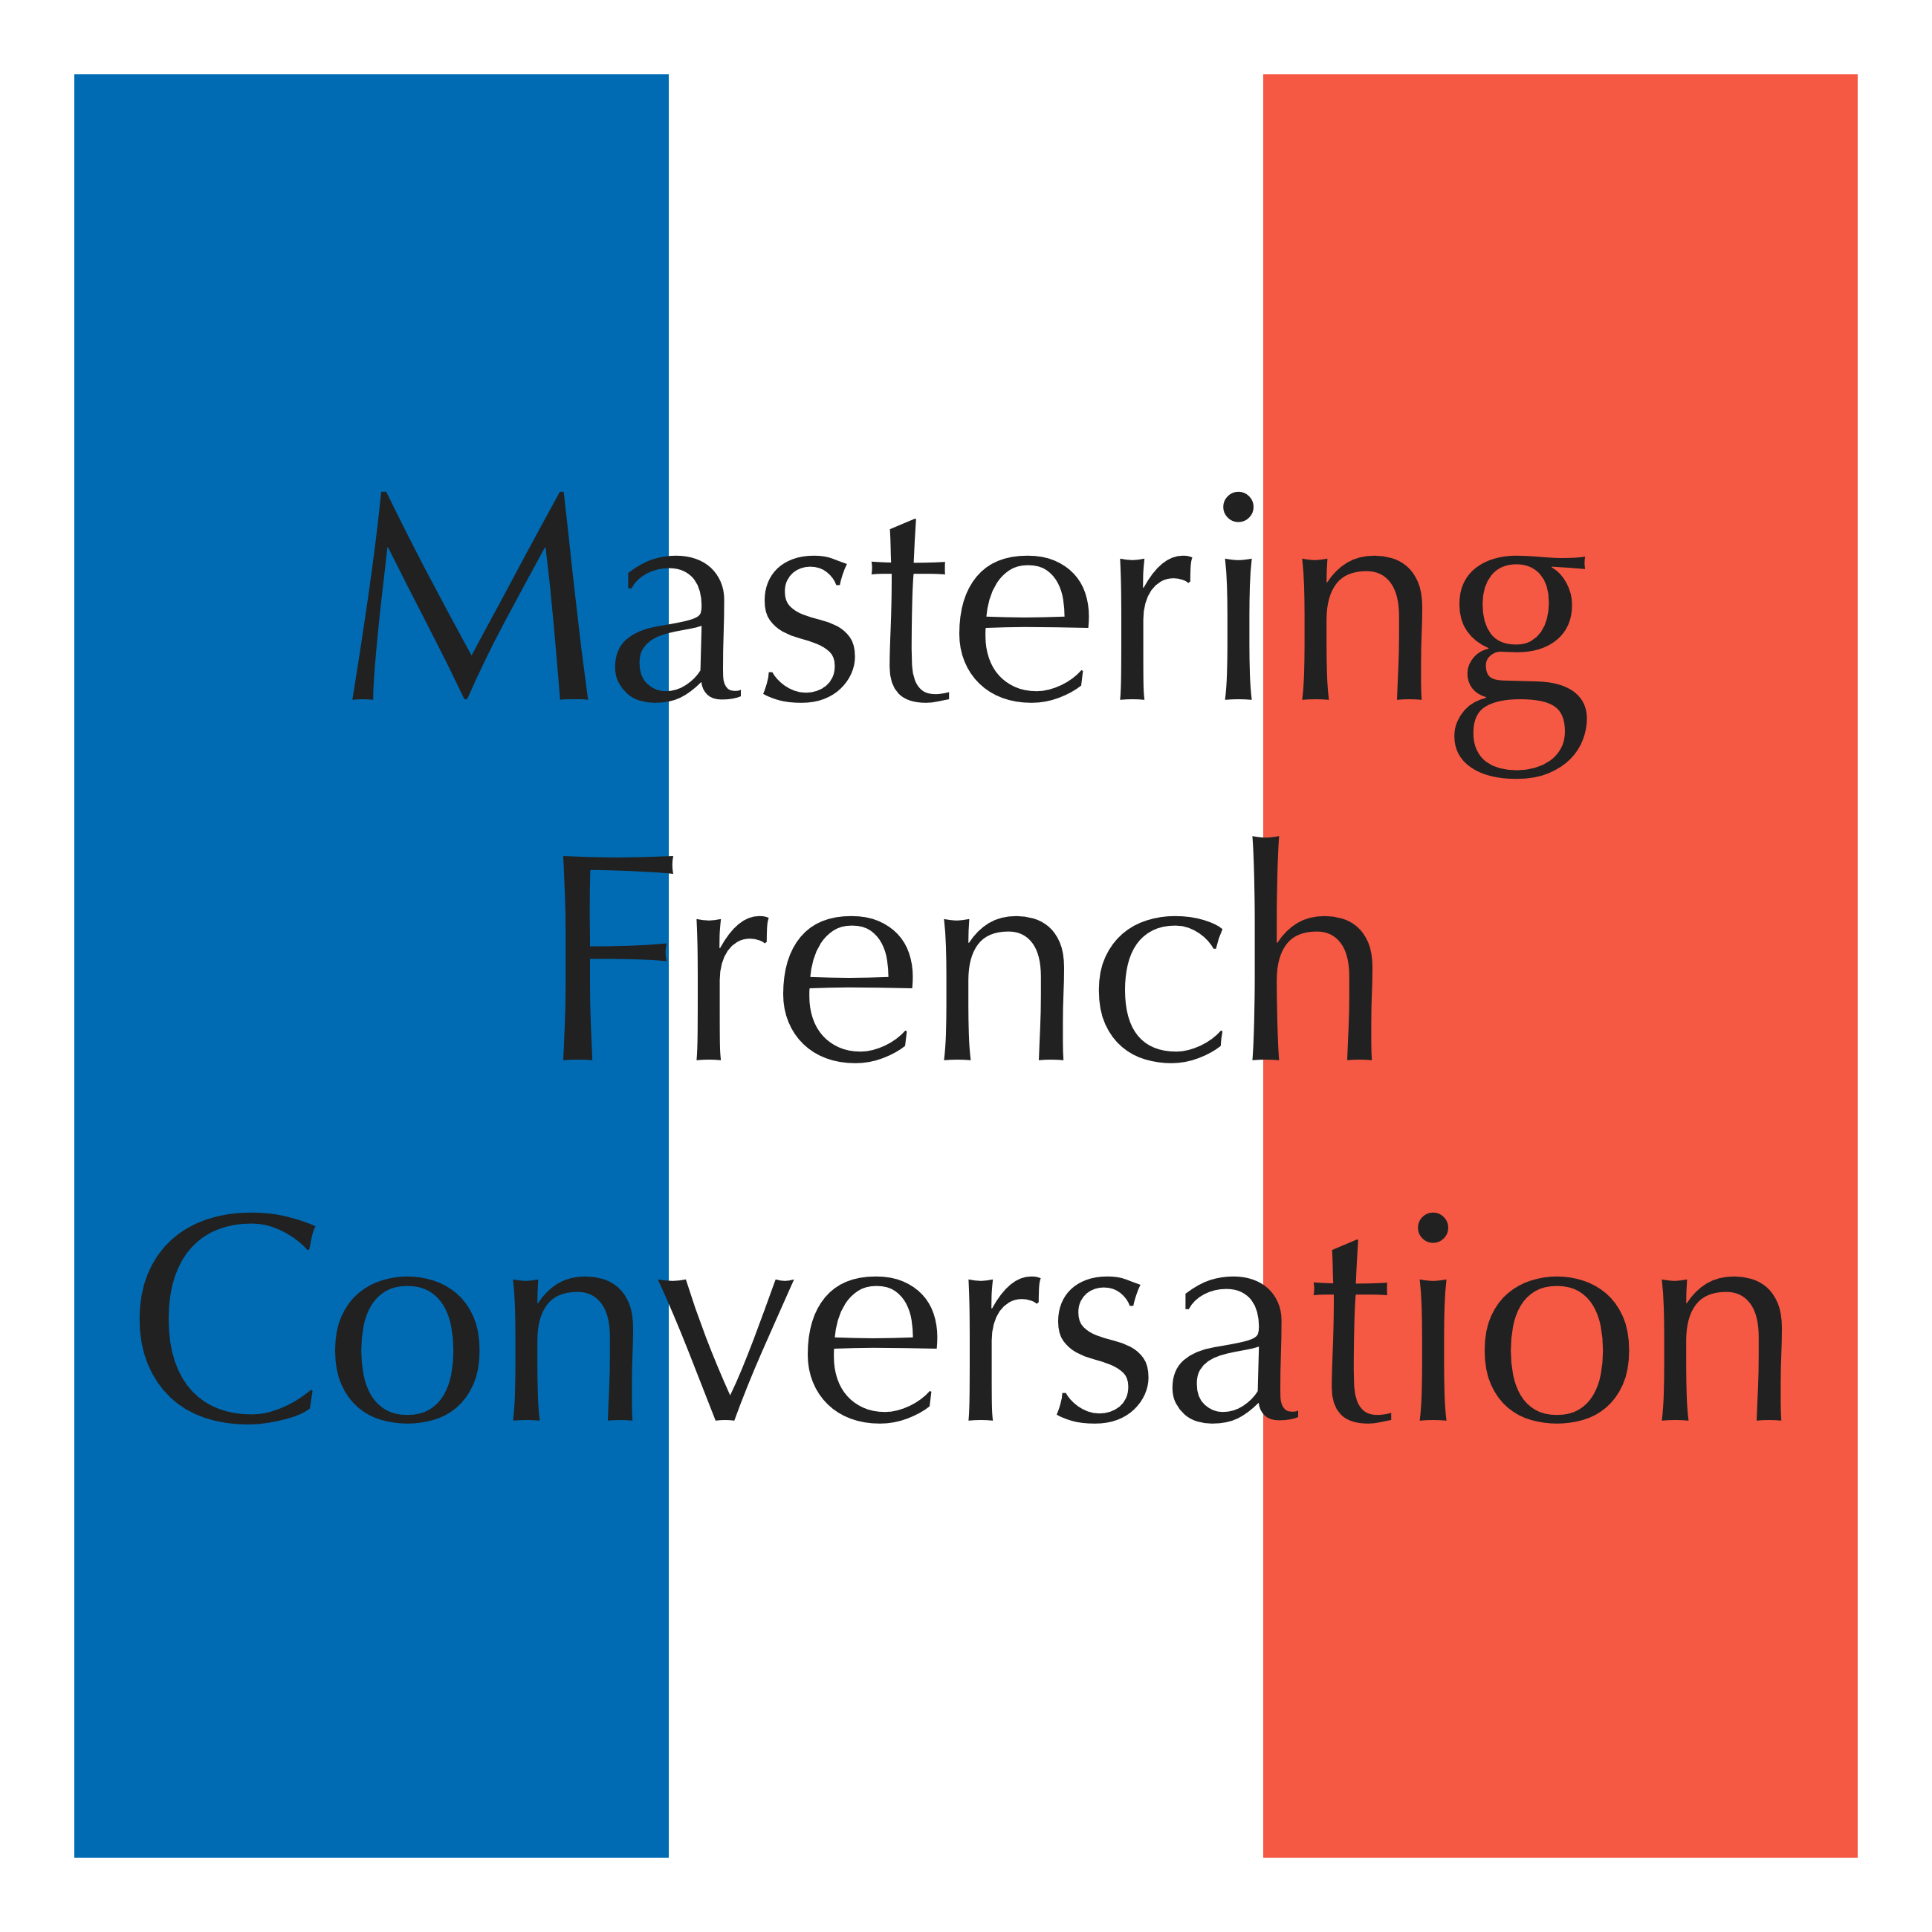 Mastering French Conversation Unit 1 (excerpt) by Dr. Brians Languages